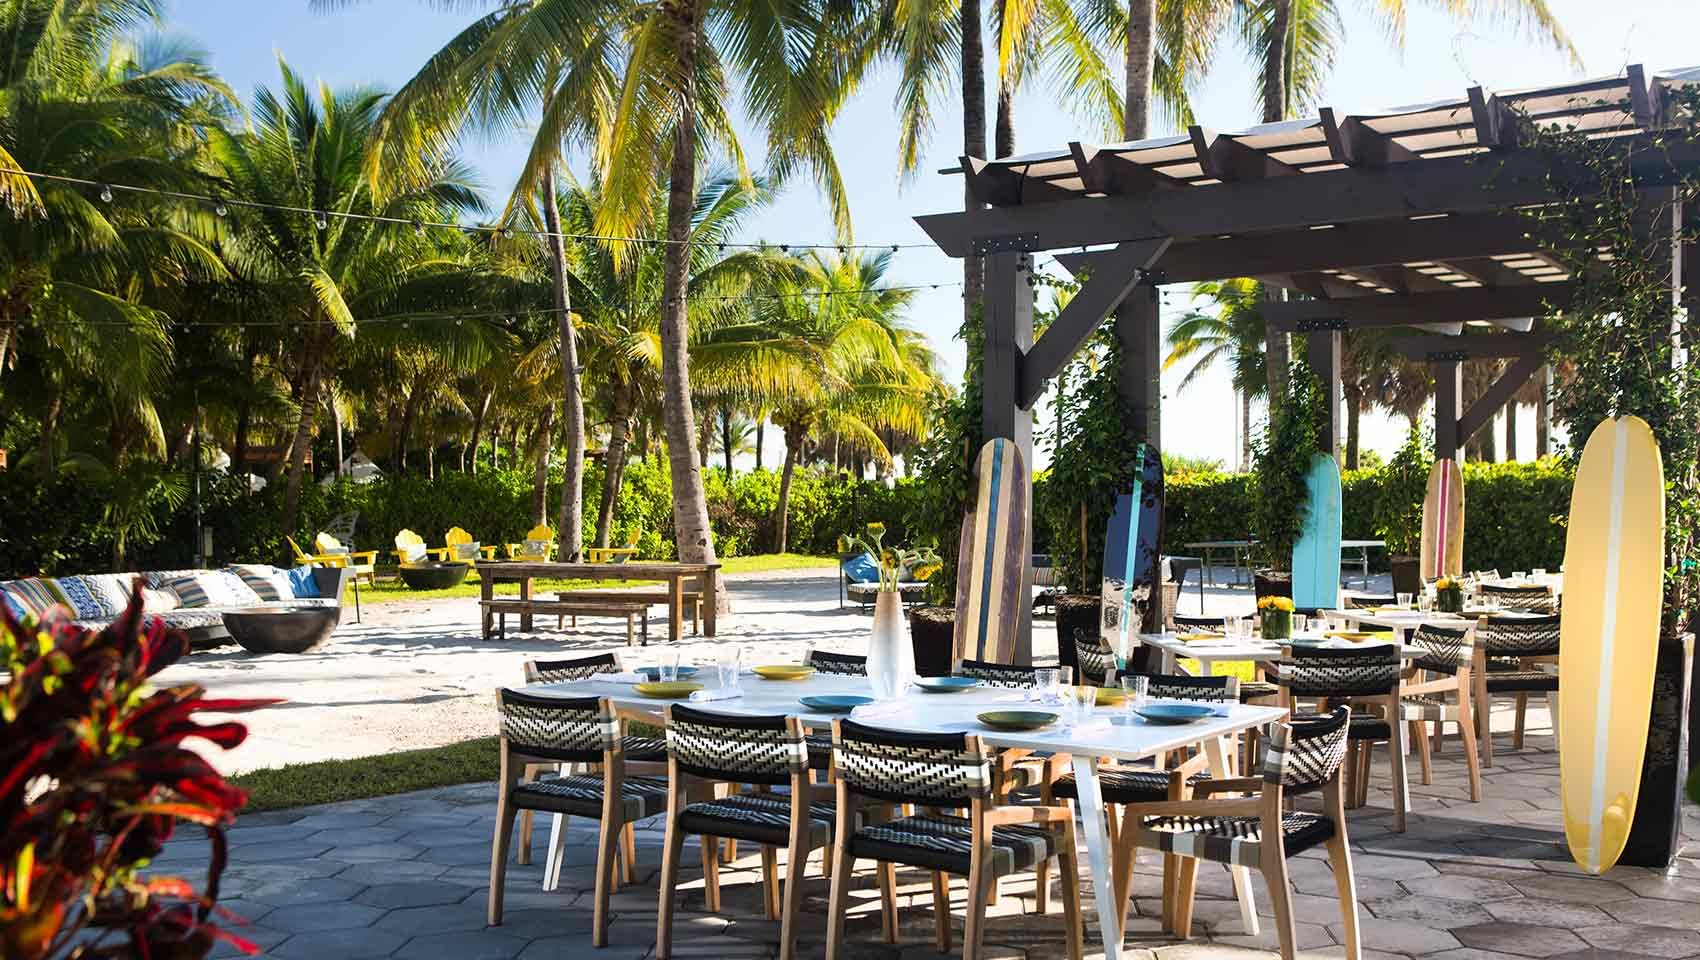 Kimpton Surfcomber Hotel Is A Trendy And Hip Boutique In South Beach Miami Florida Enjoy An Ocean Front Stay At Our